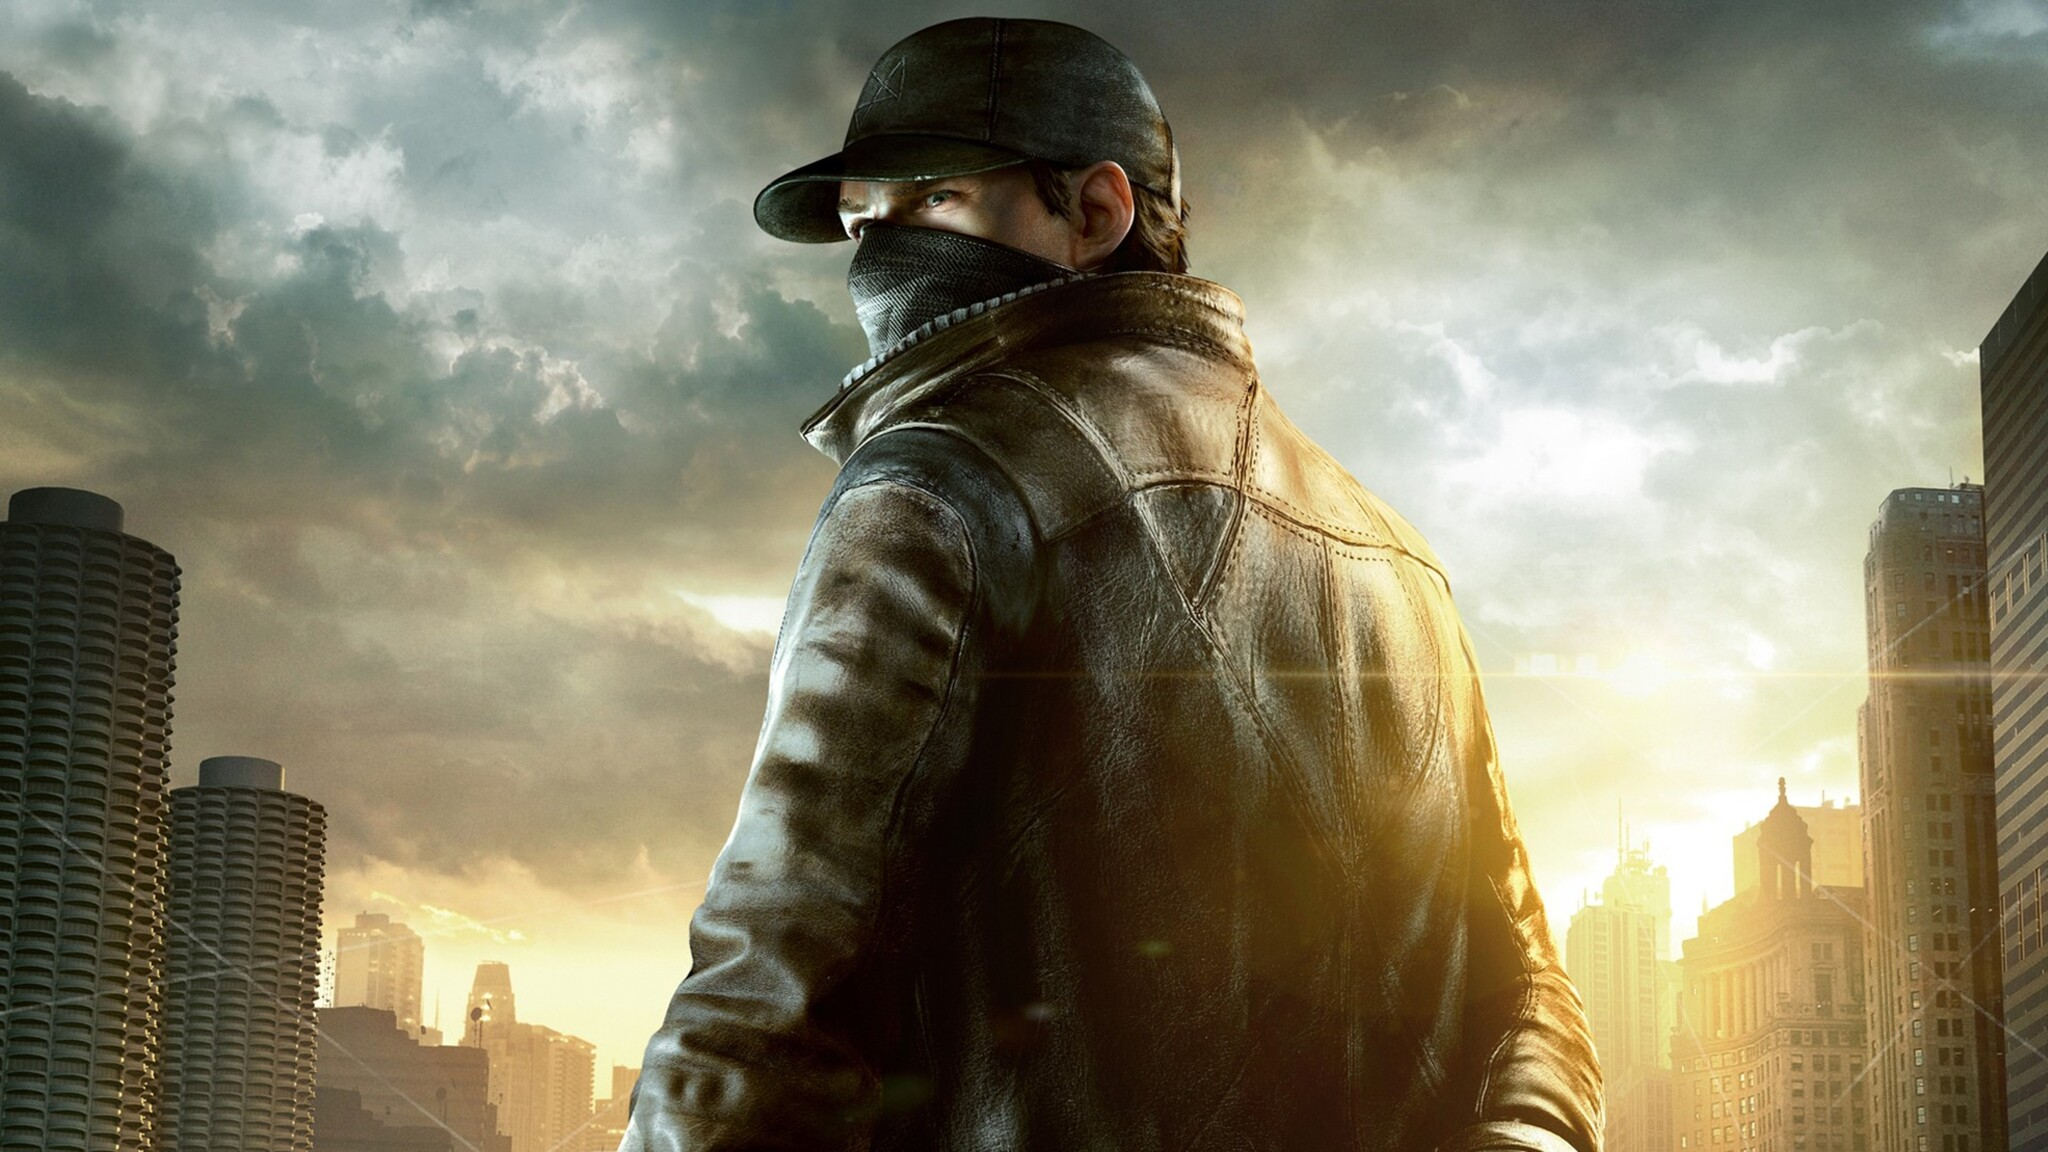 Watch Dogs High Resolution Games Hd Wallpaper For Mobile: 2048x1152 Aiden Pearce Watch Dogs 2048x1152 Resolution HD